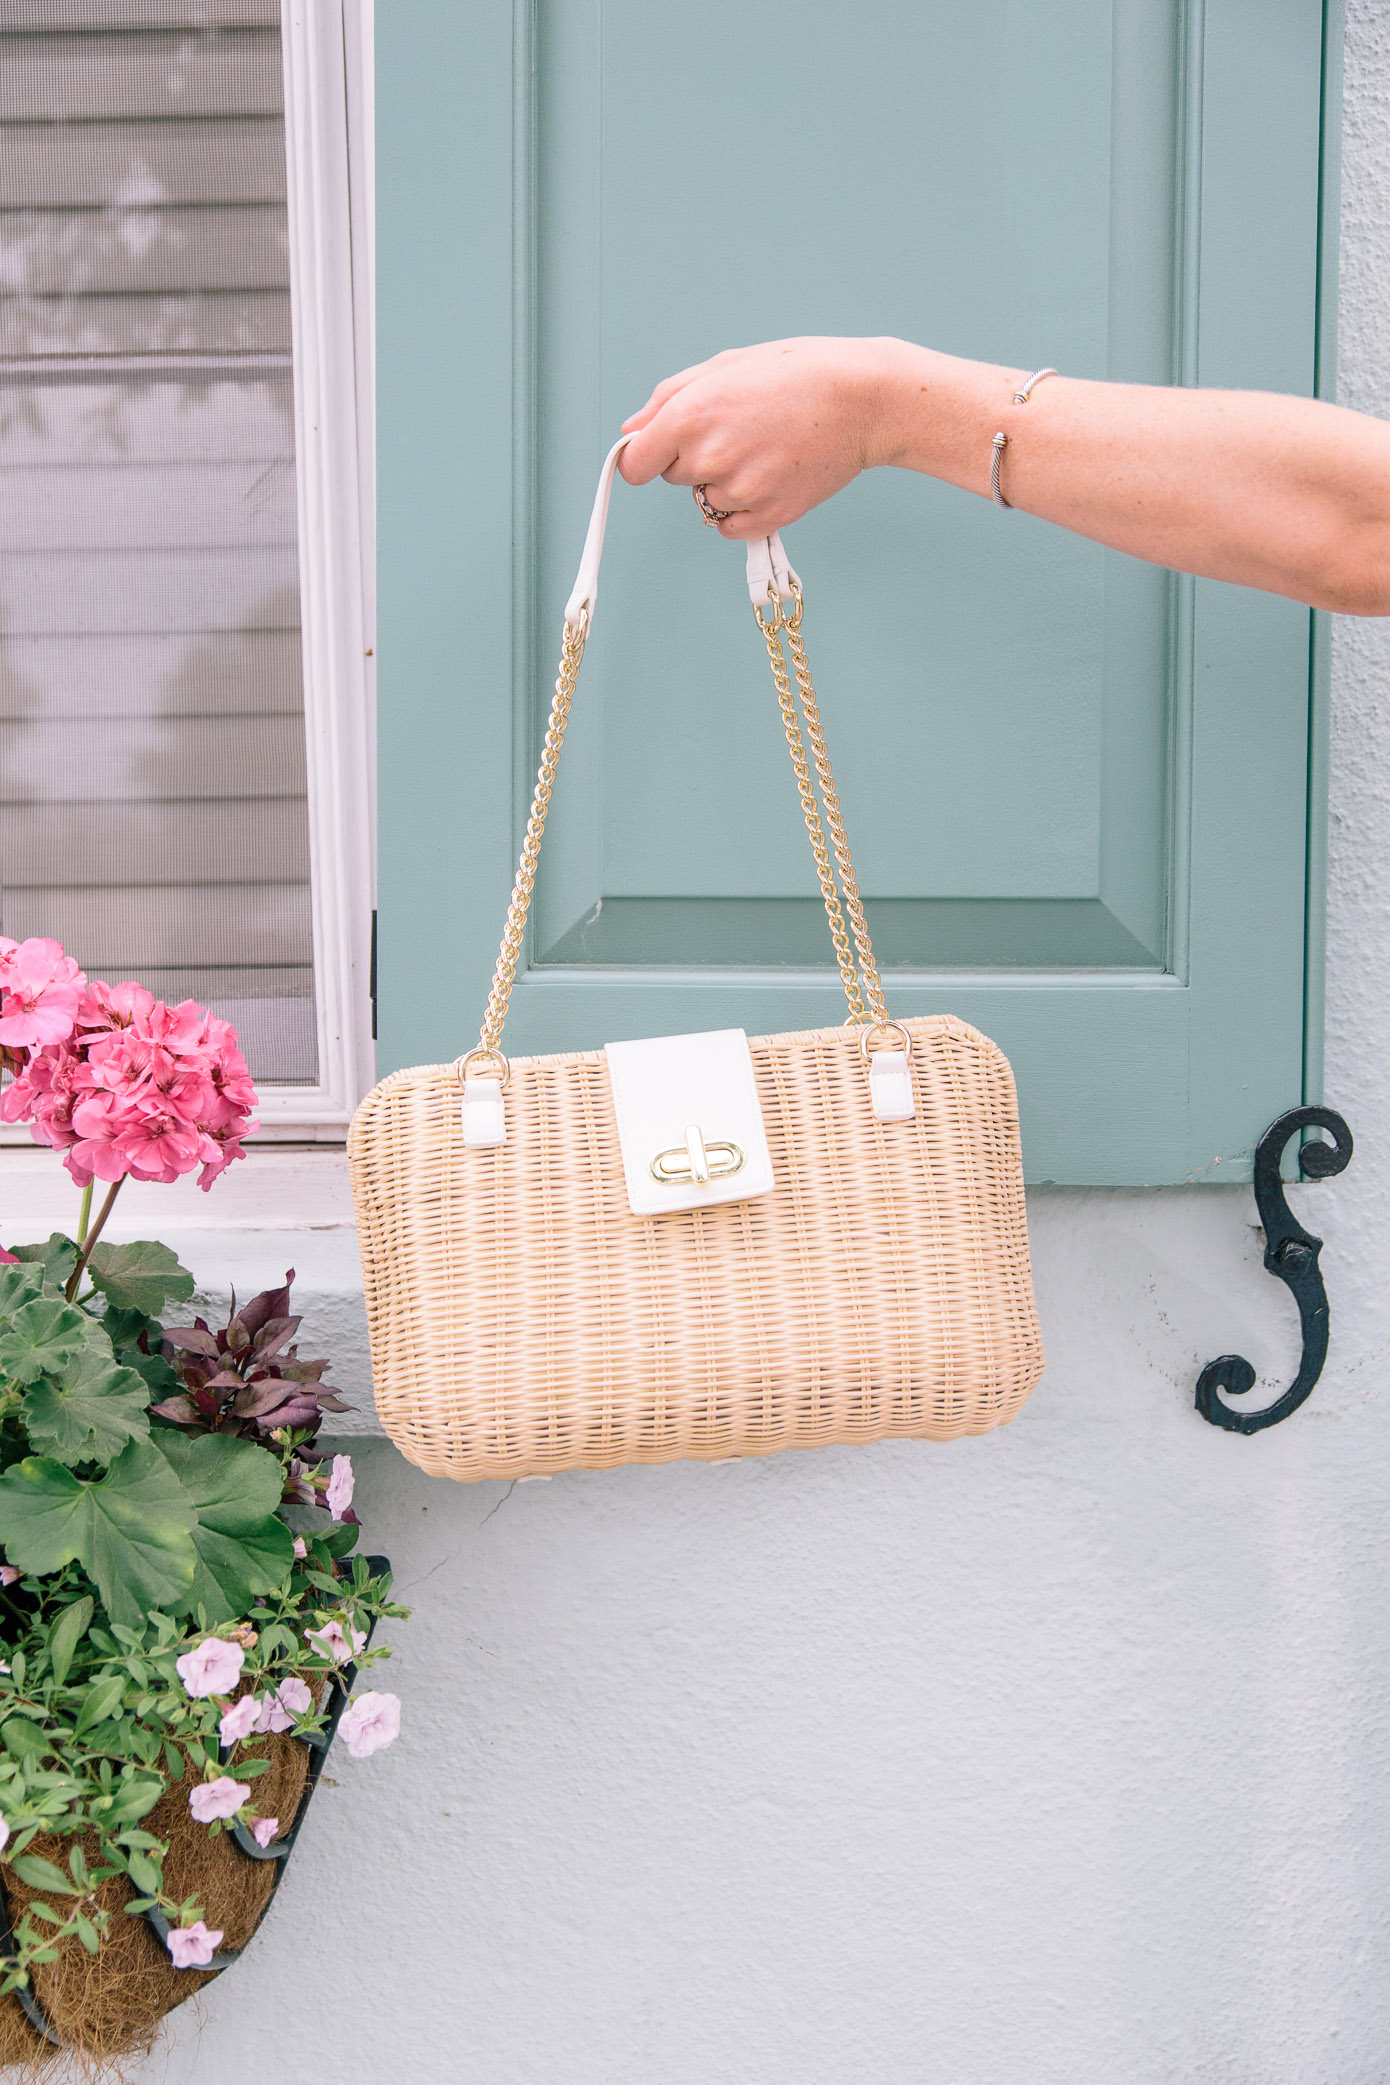 Chic Wicker Handbag | Talbots Friends & Family Event | Louella Reese Life & Style Blog